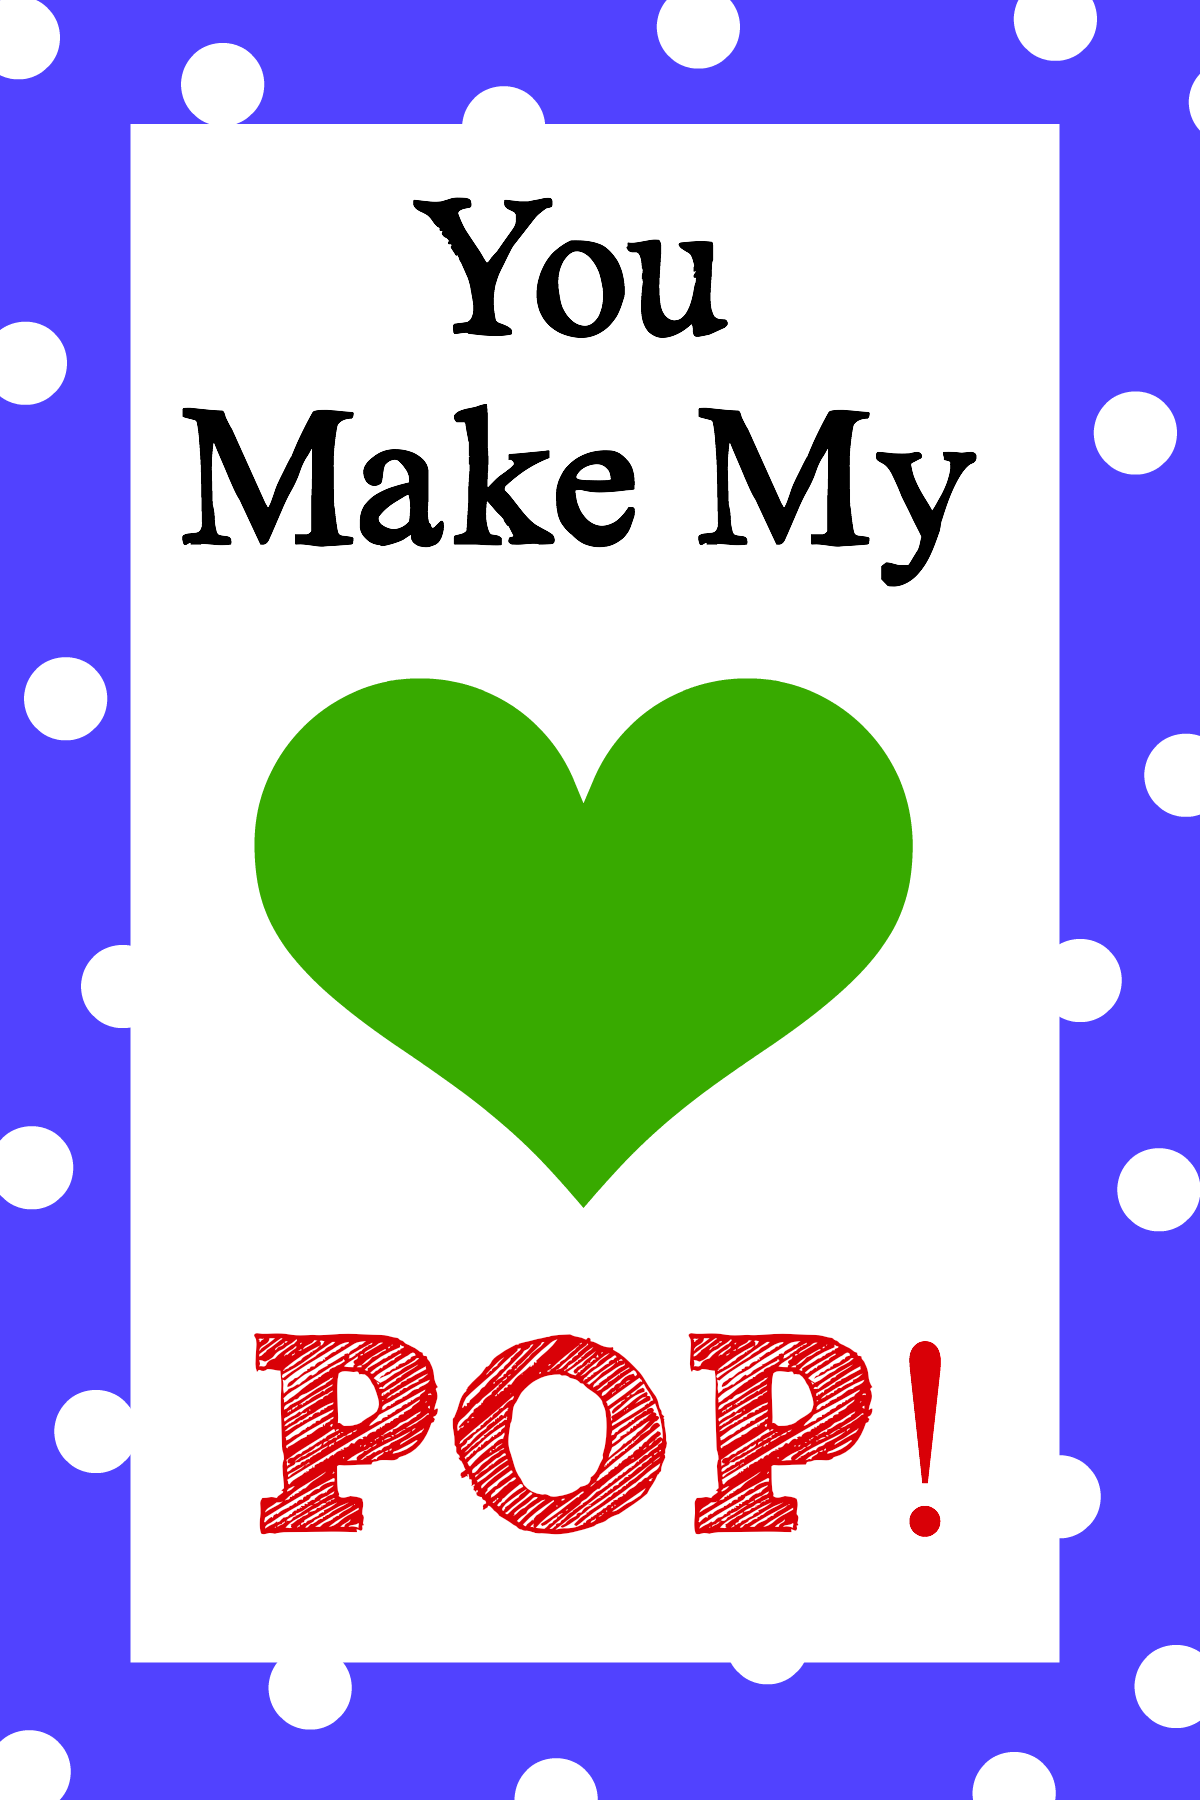 image relating to Popcorn Valentine Printable identify Your self Generate My Center Pop! Valentines Thought - Ridiculous Tiny Initiatives